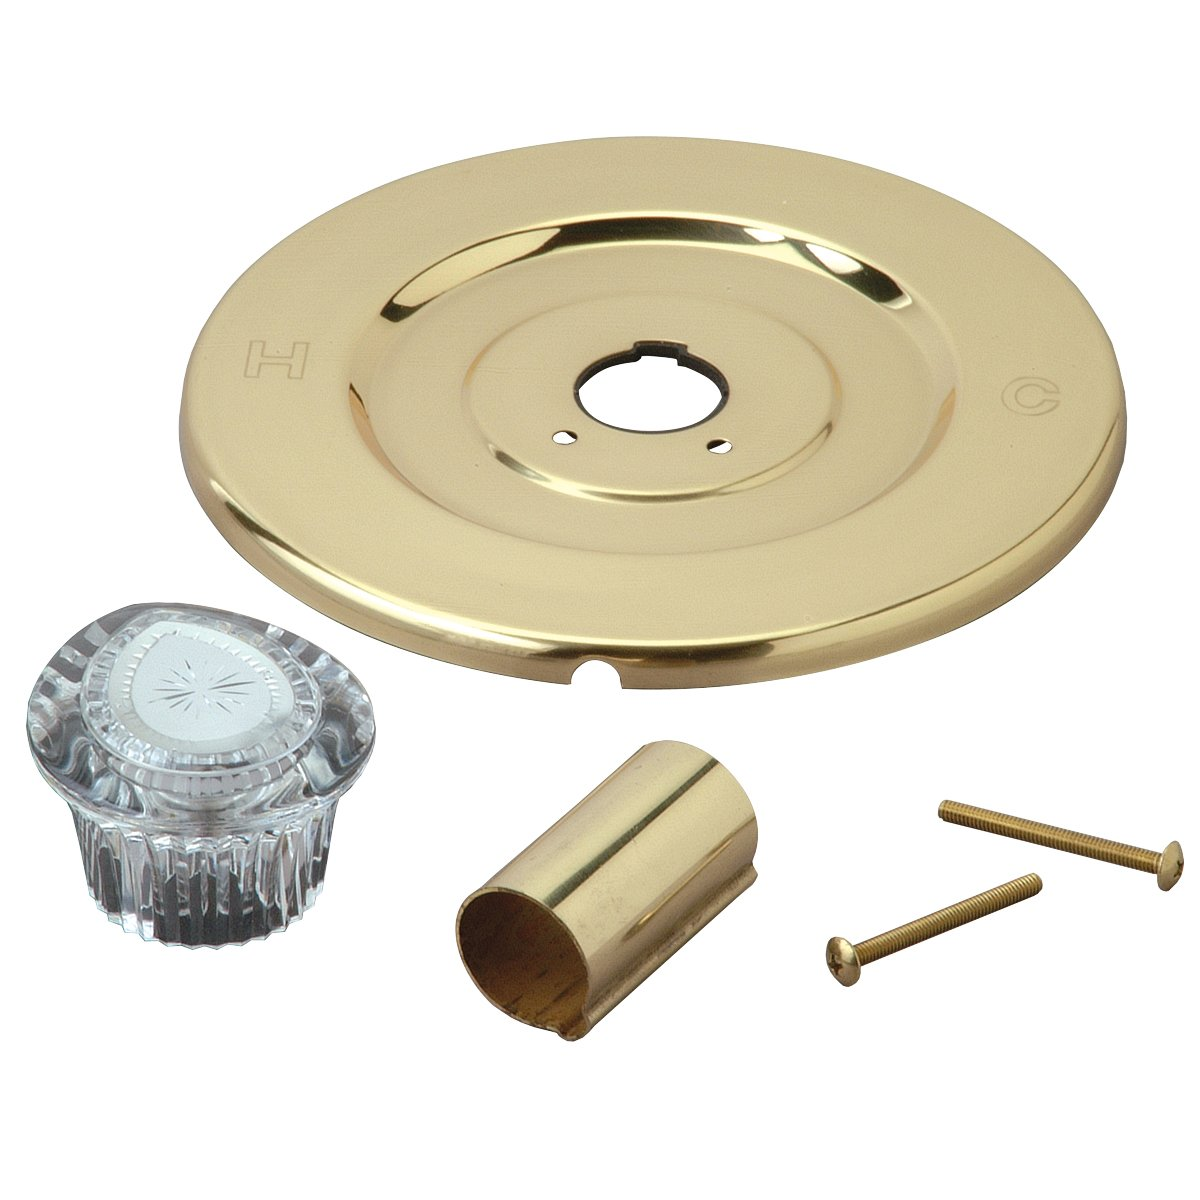 BrassCraft SK0231 Tub and Shower Faucet Rebuild Kit for Moen Faucets ...